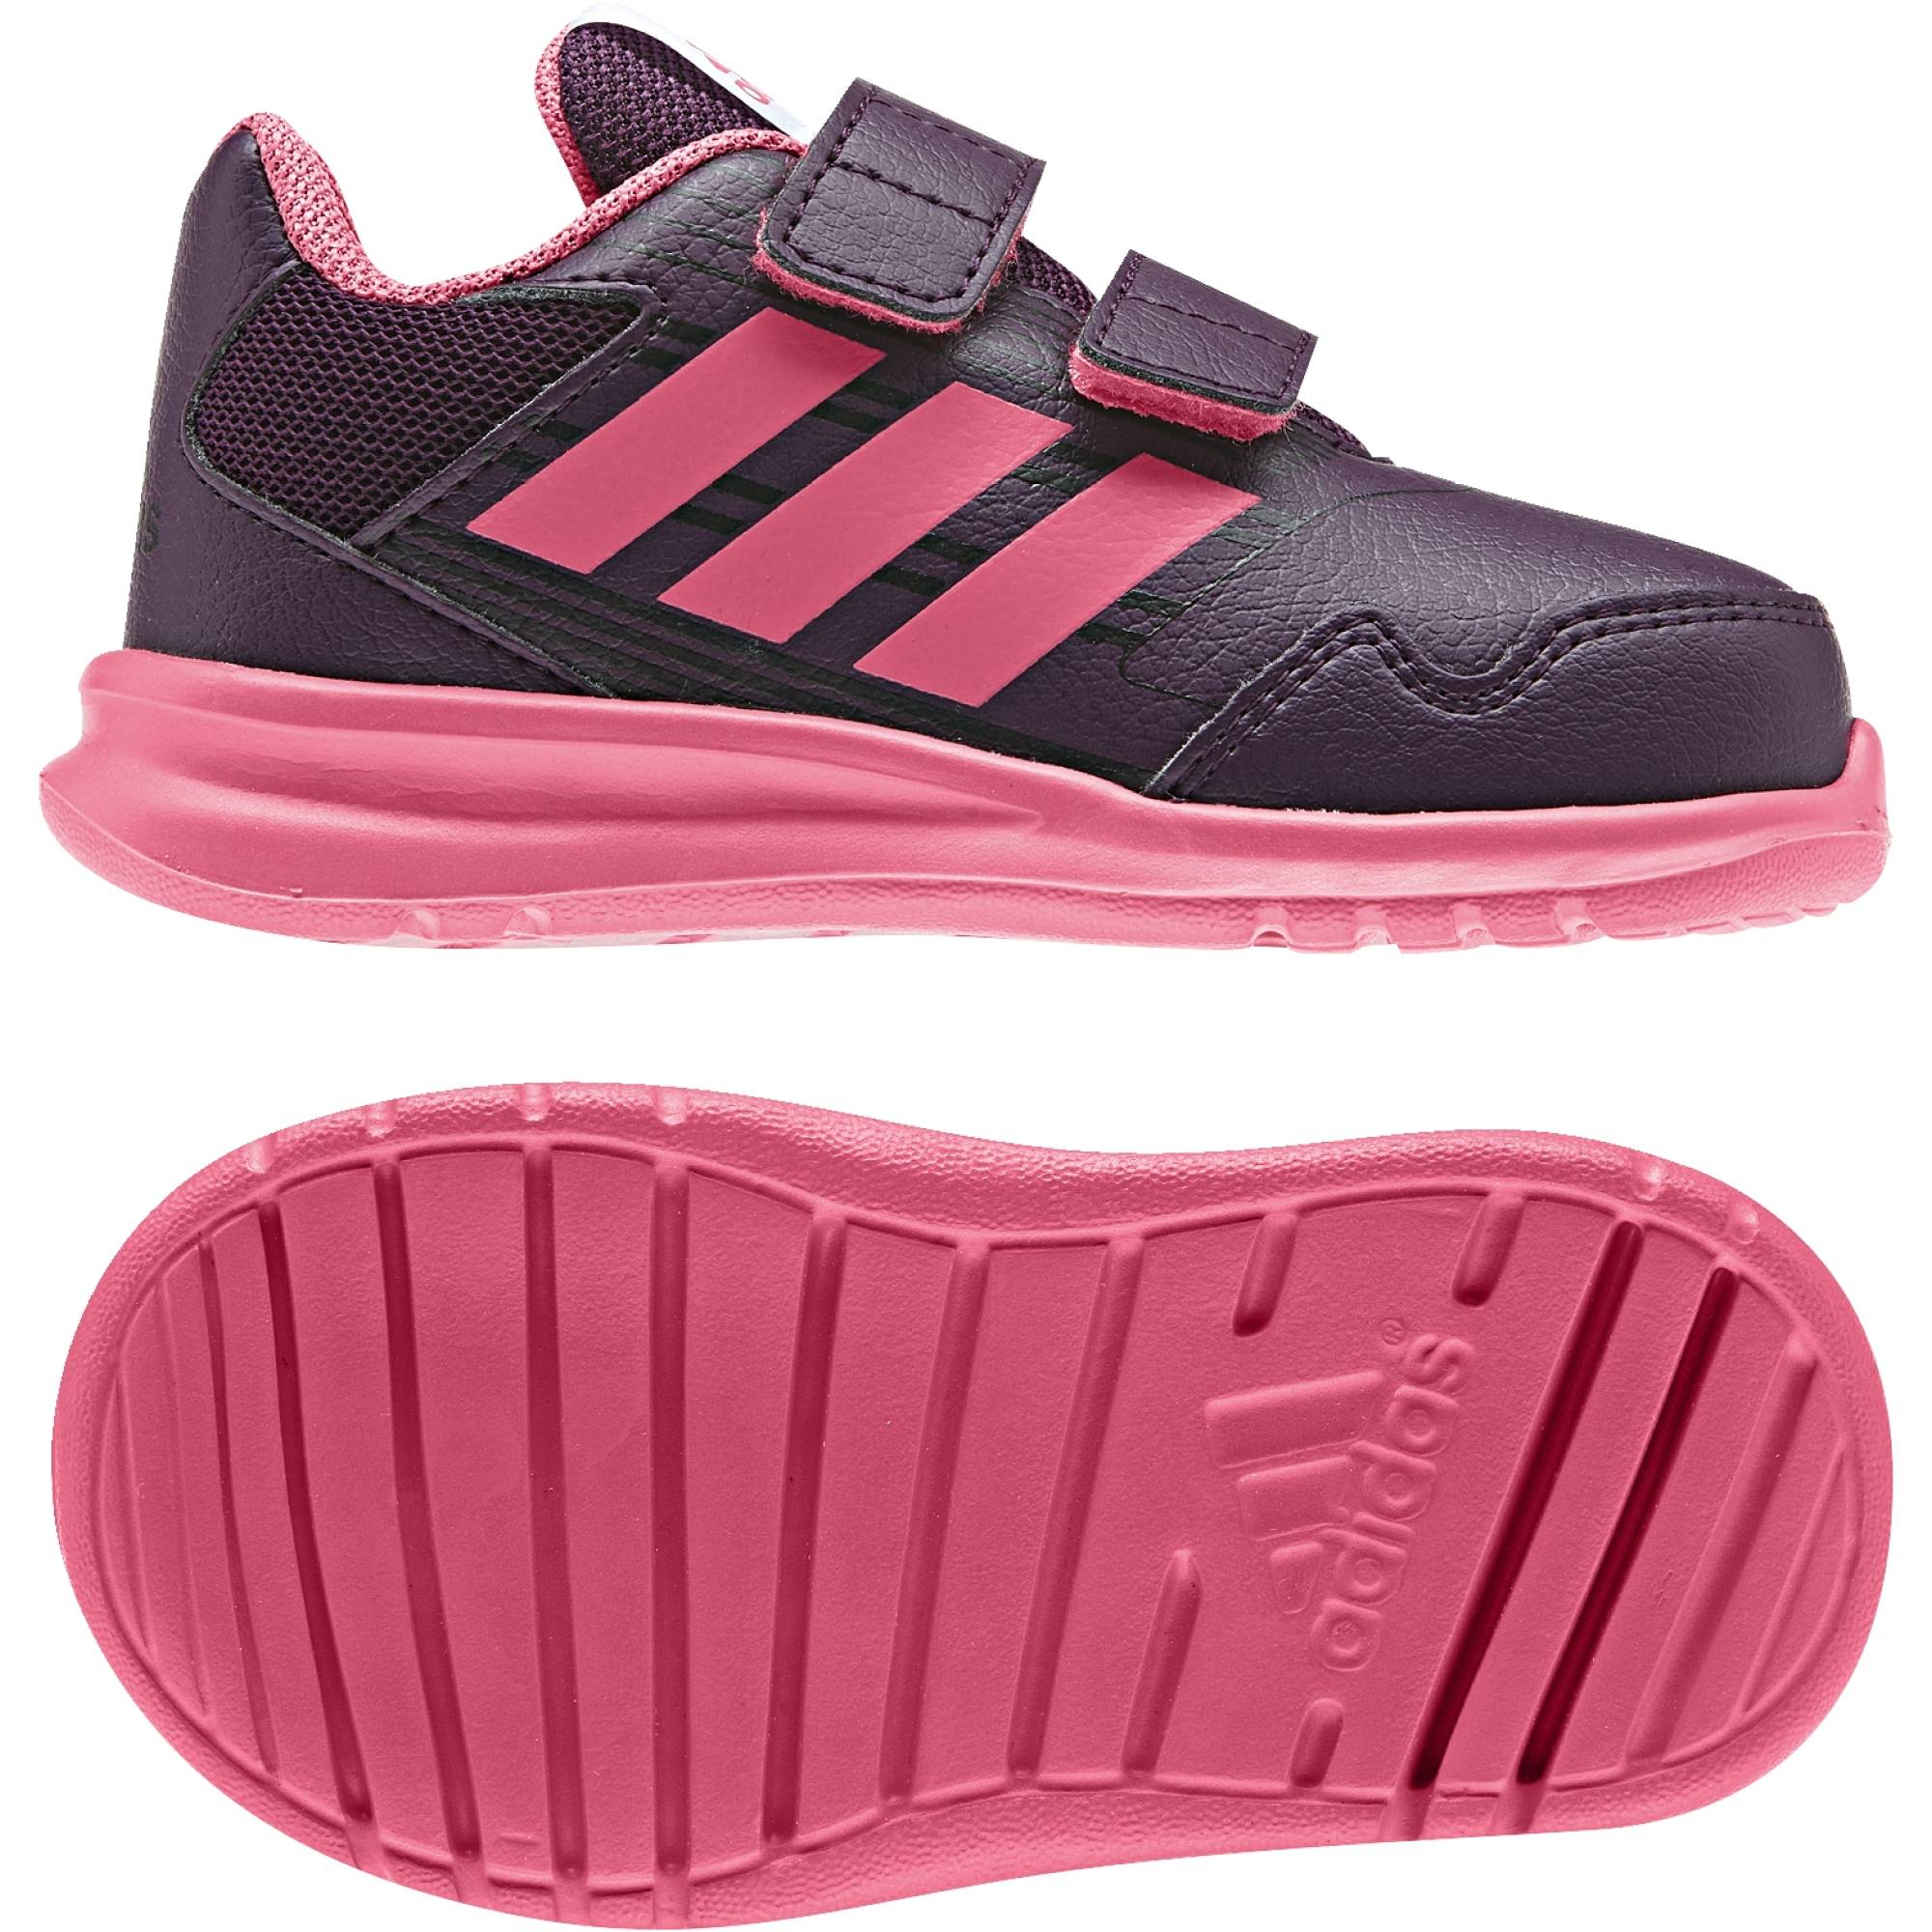 promo code b3347 1cb1b ADIDAS ALTARUN CF KIDS SHOES BB6393   San Siro Sports   Casual